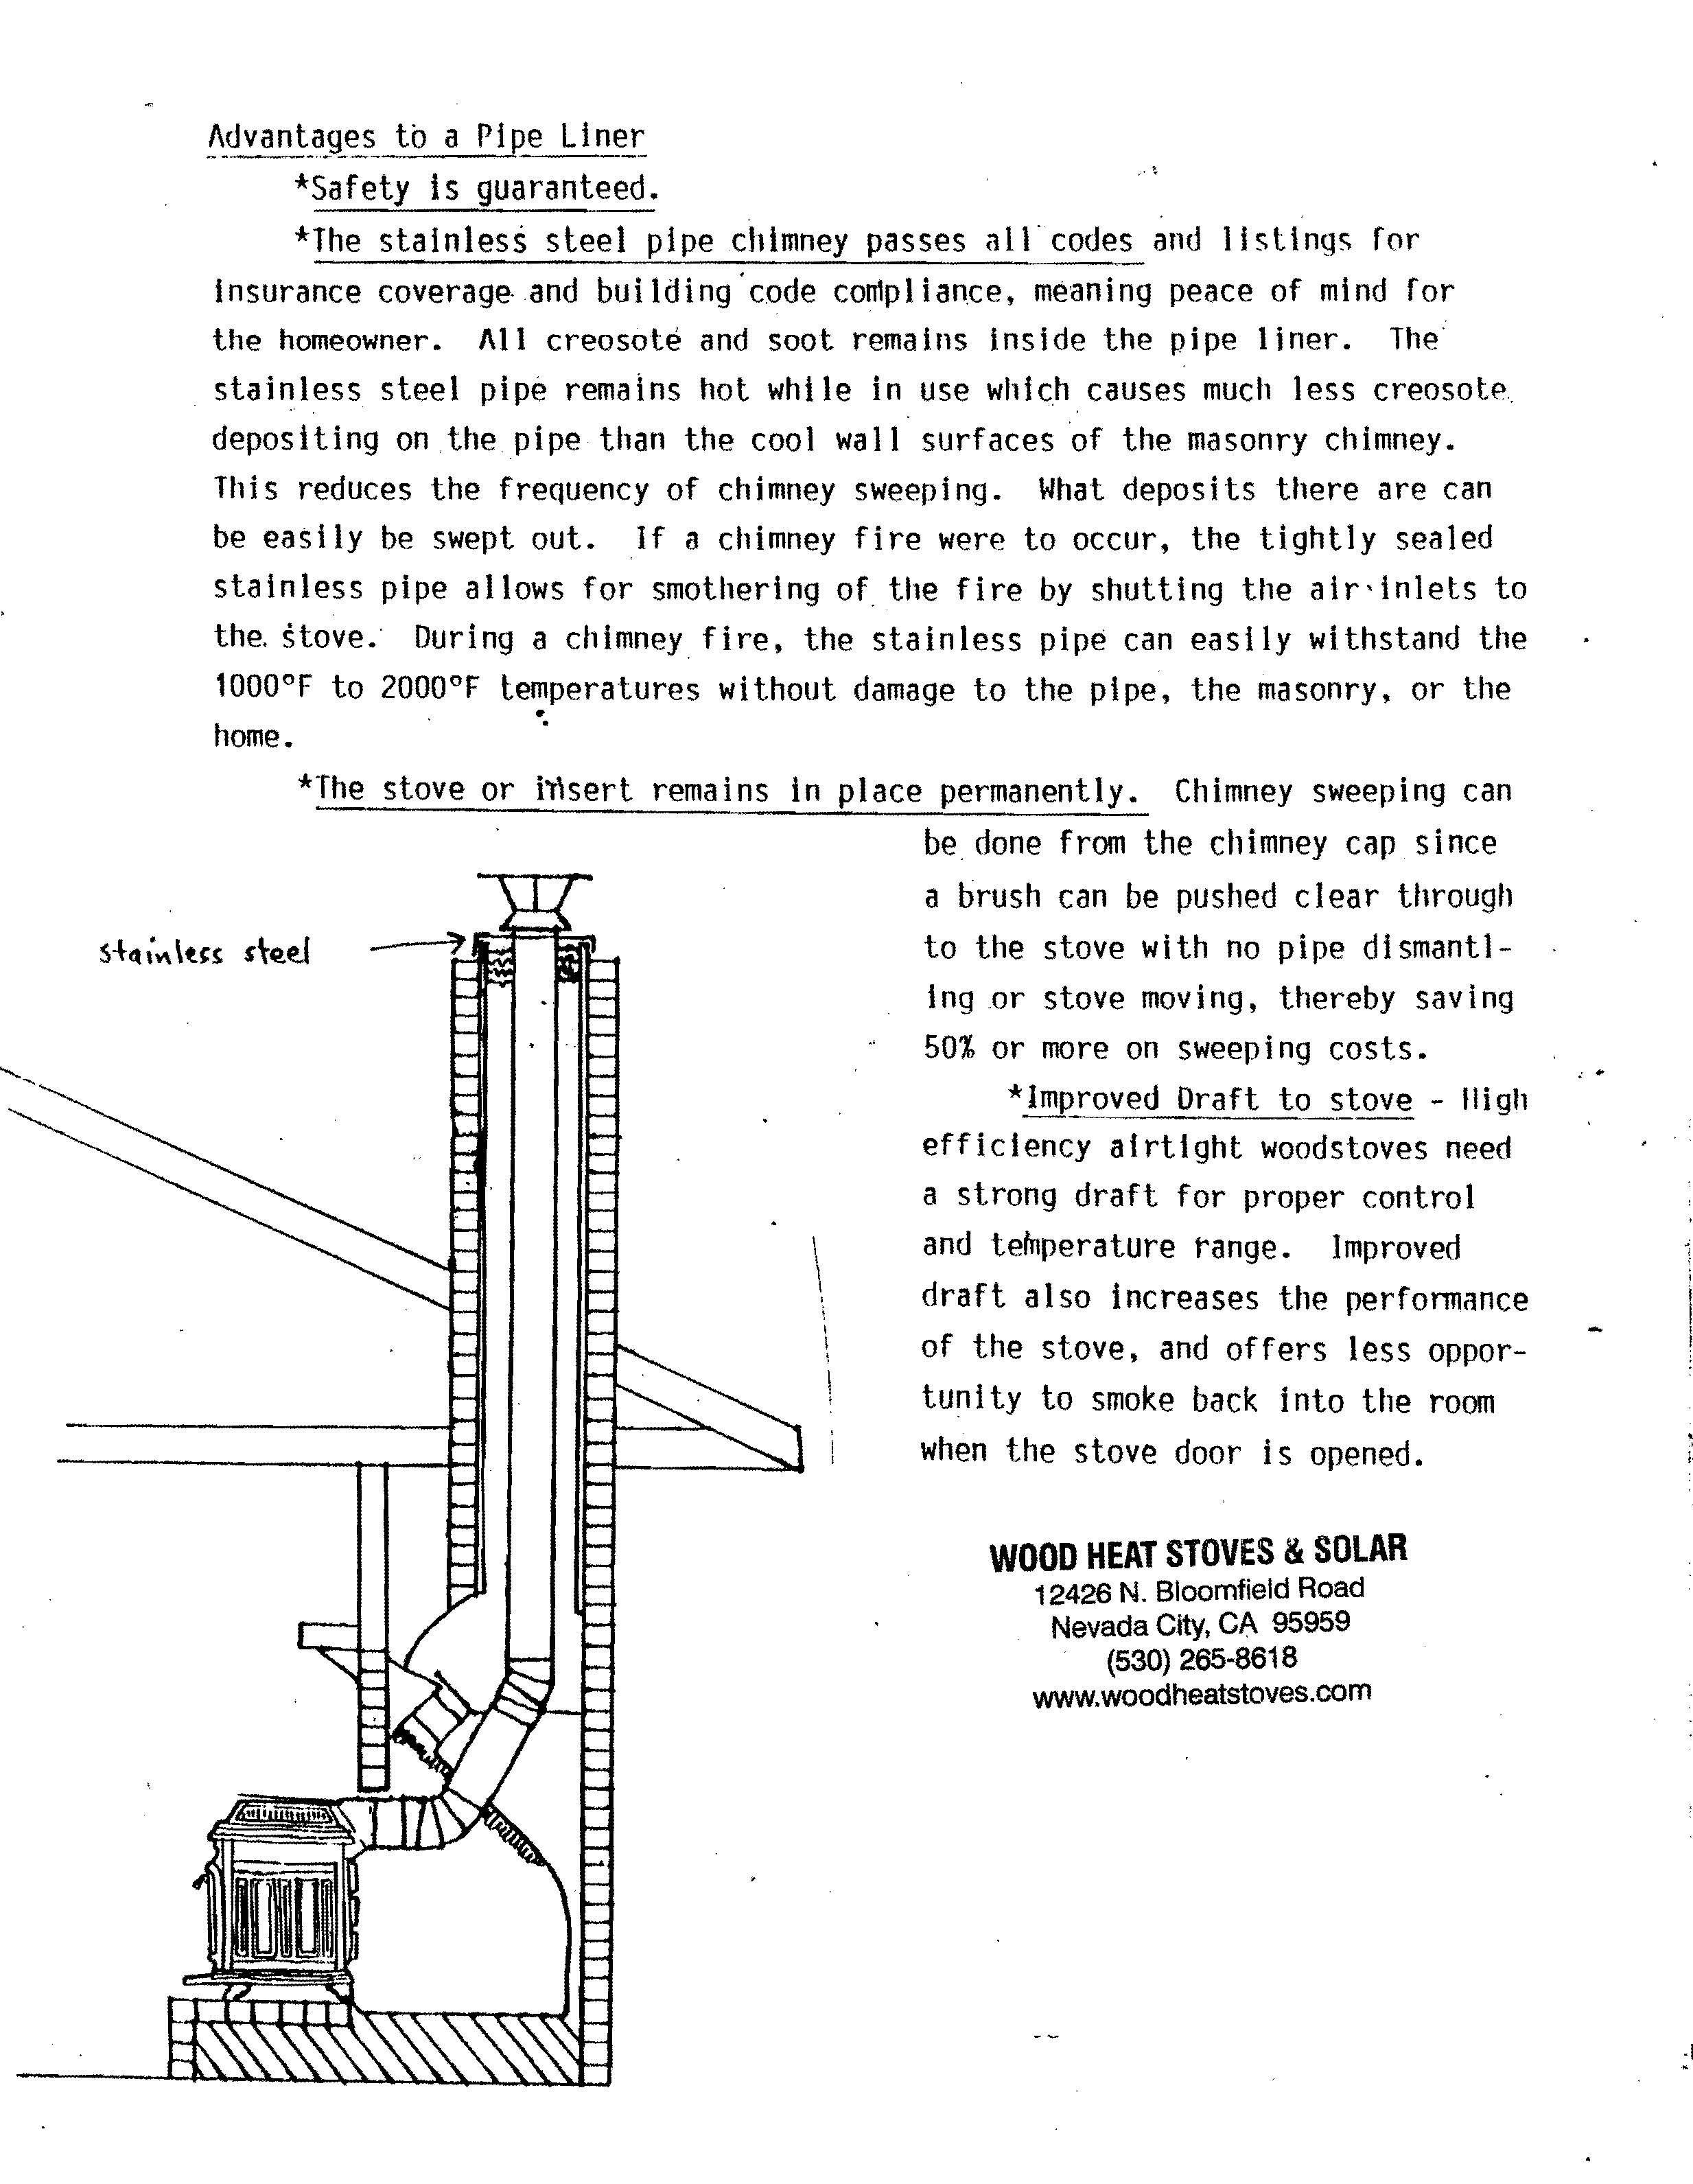 Wood Stove Chimney Liner information for installations to existing ...